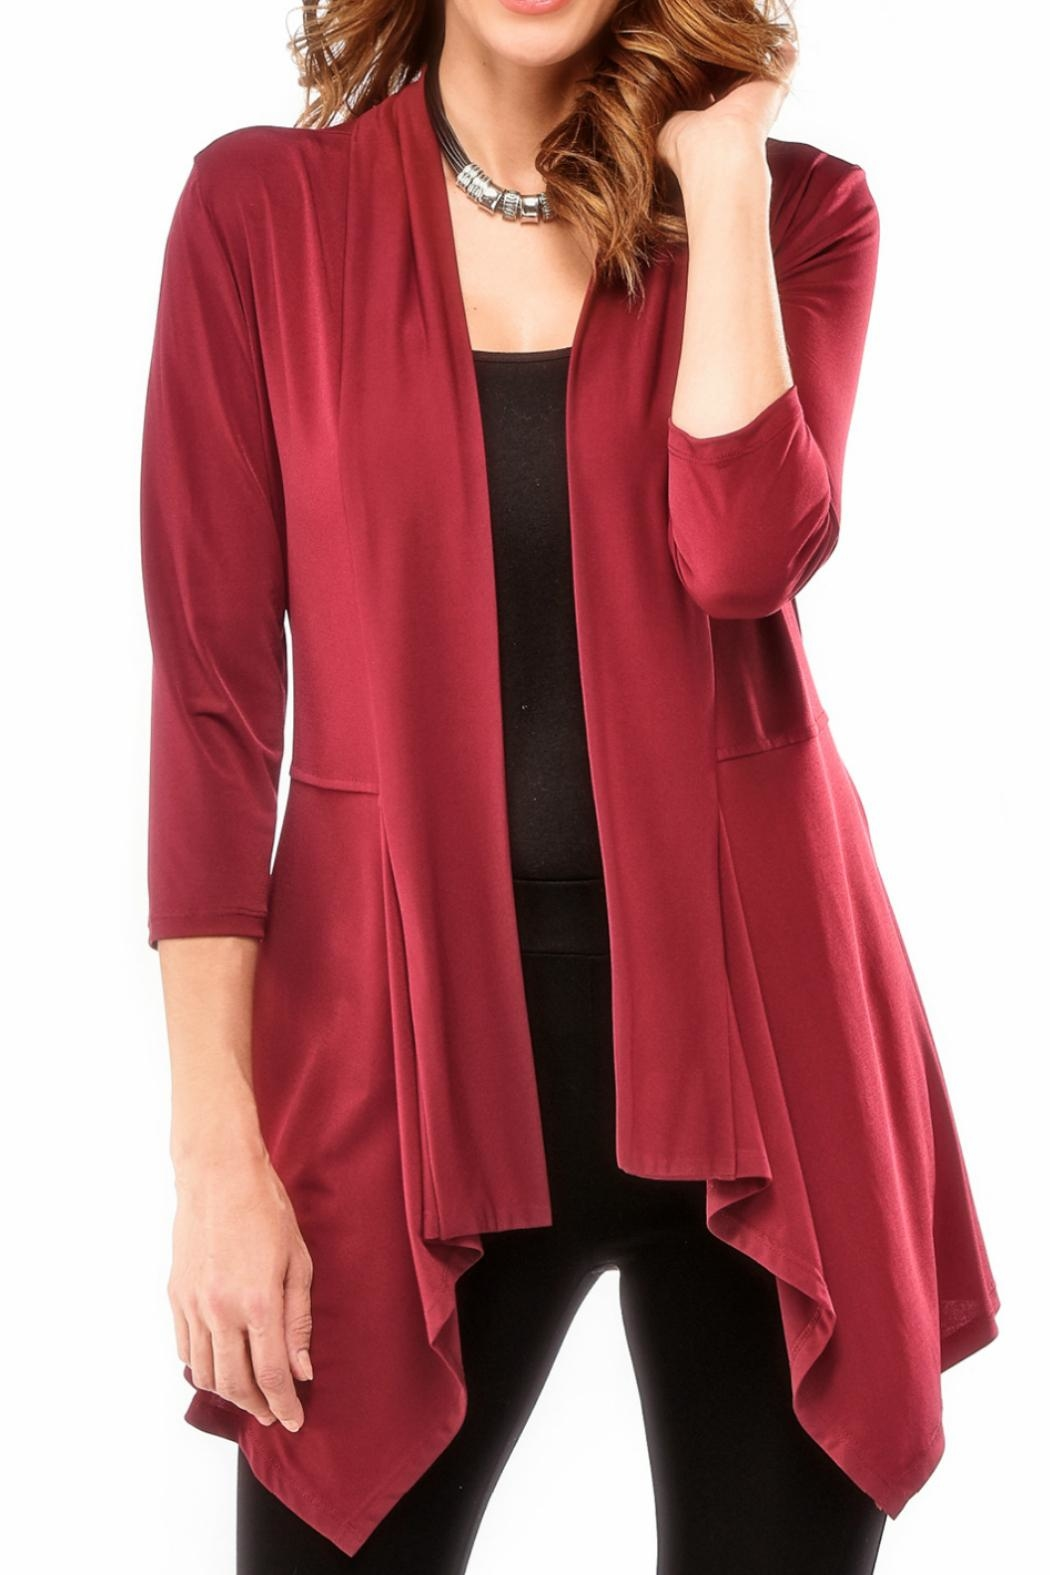 Charlie Paige Slimming Cardigan Sweater from Virginia by Mary ...